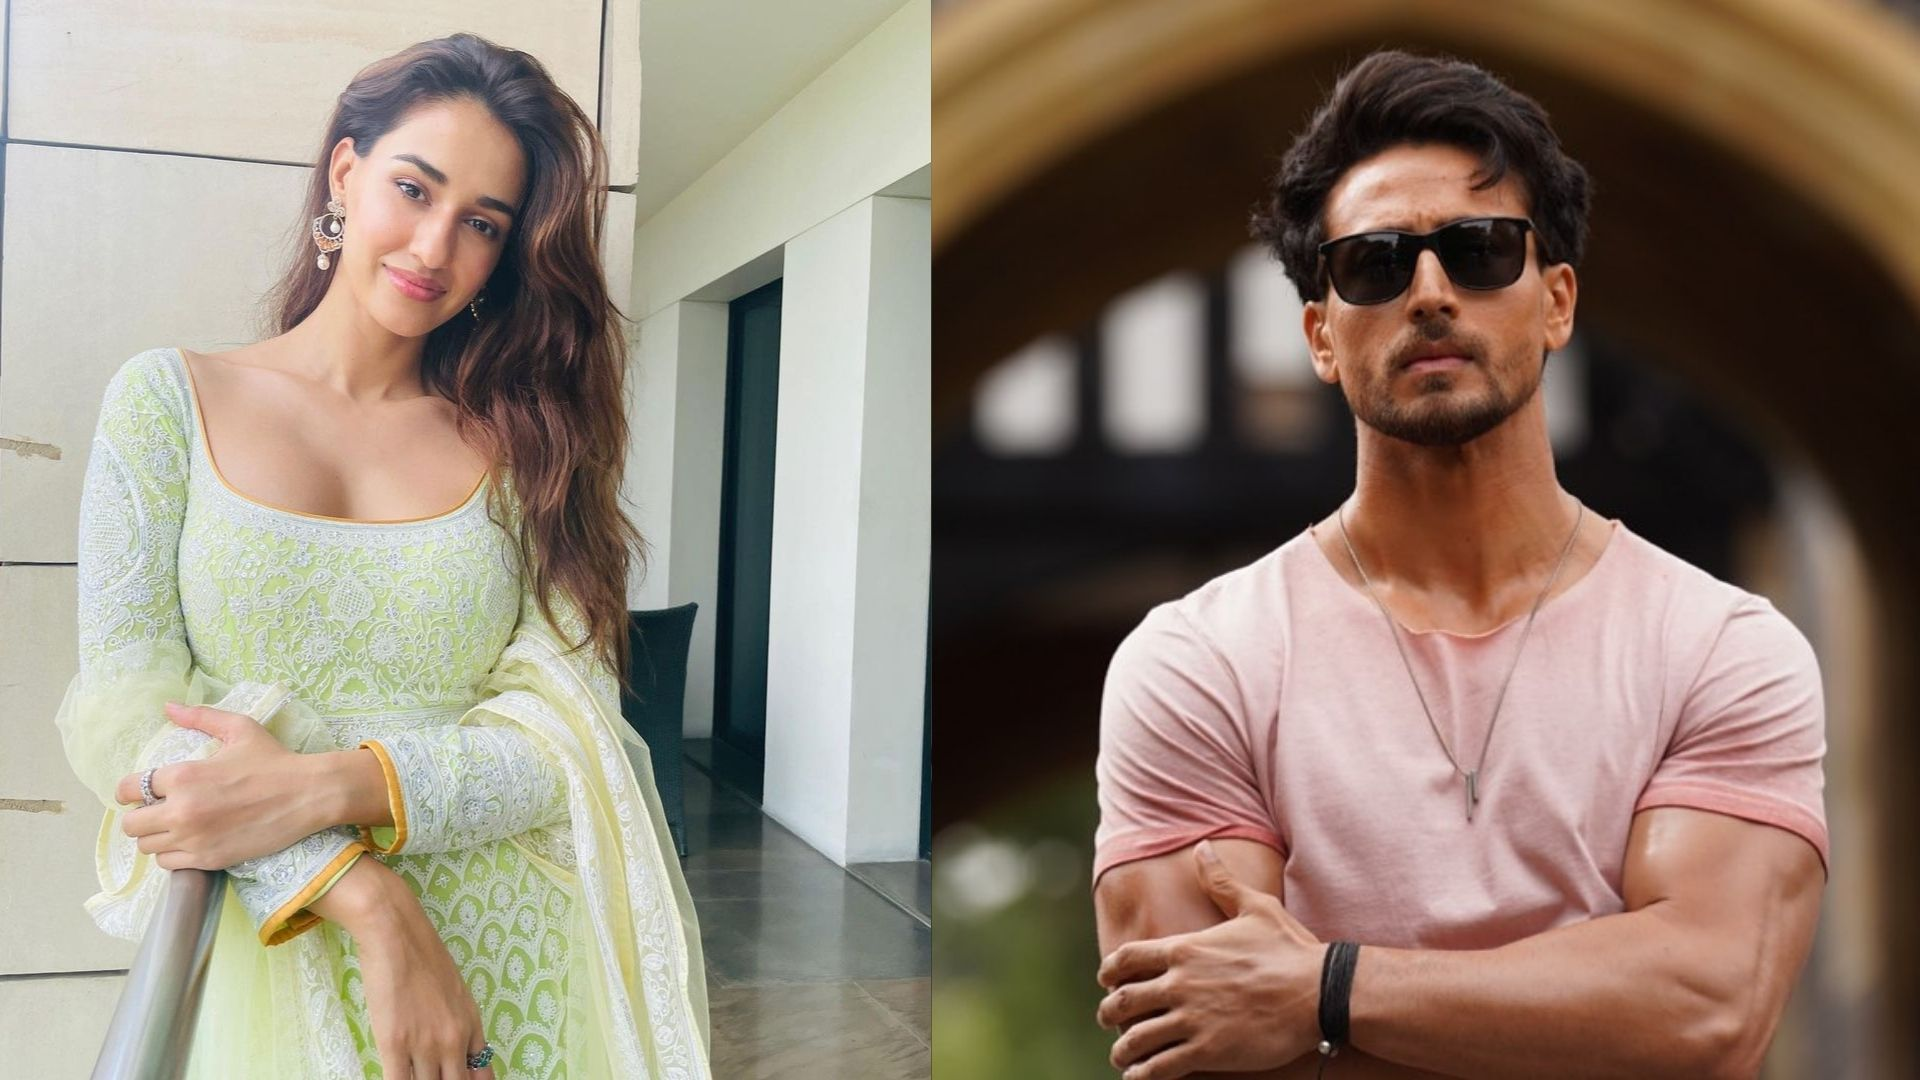 Disha Patani Looks Like A Bombshell In A Black Strapless Dress; BF Tiger Shroff Reacts With Heart Emojis